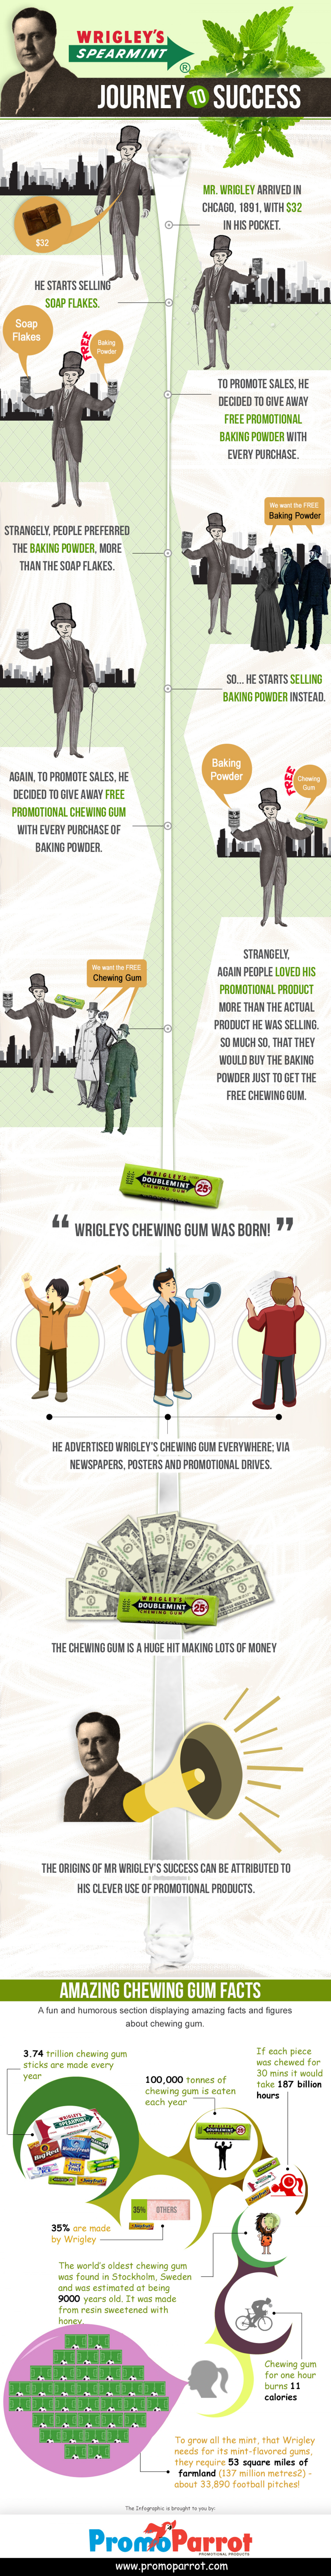 Wrigley's Journey to Success Infographic